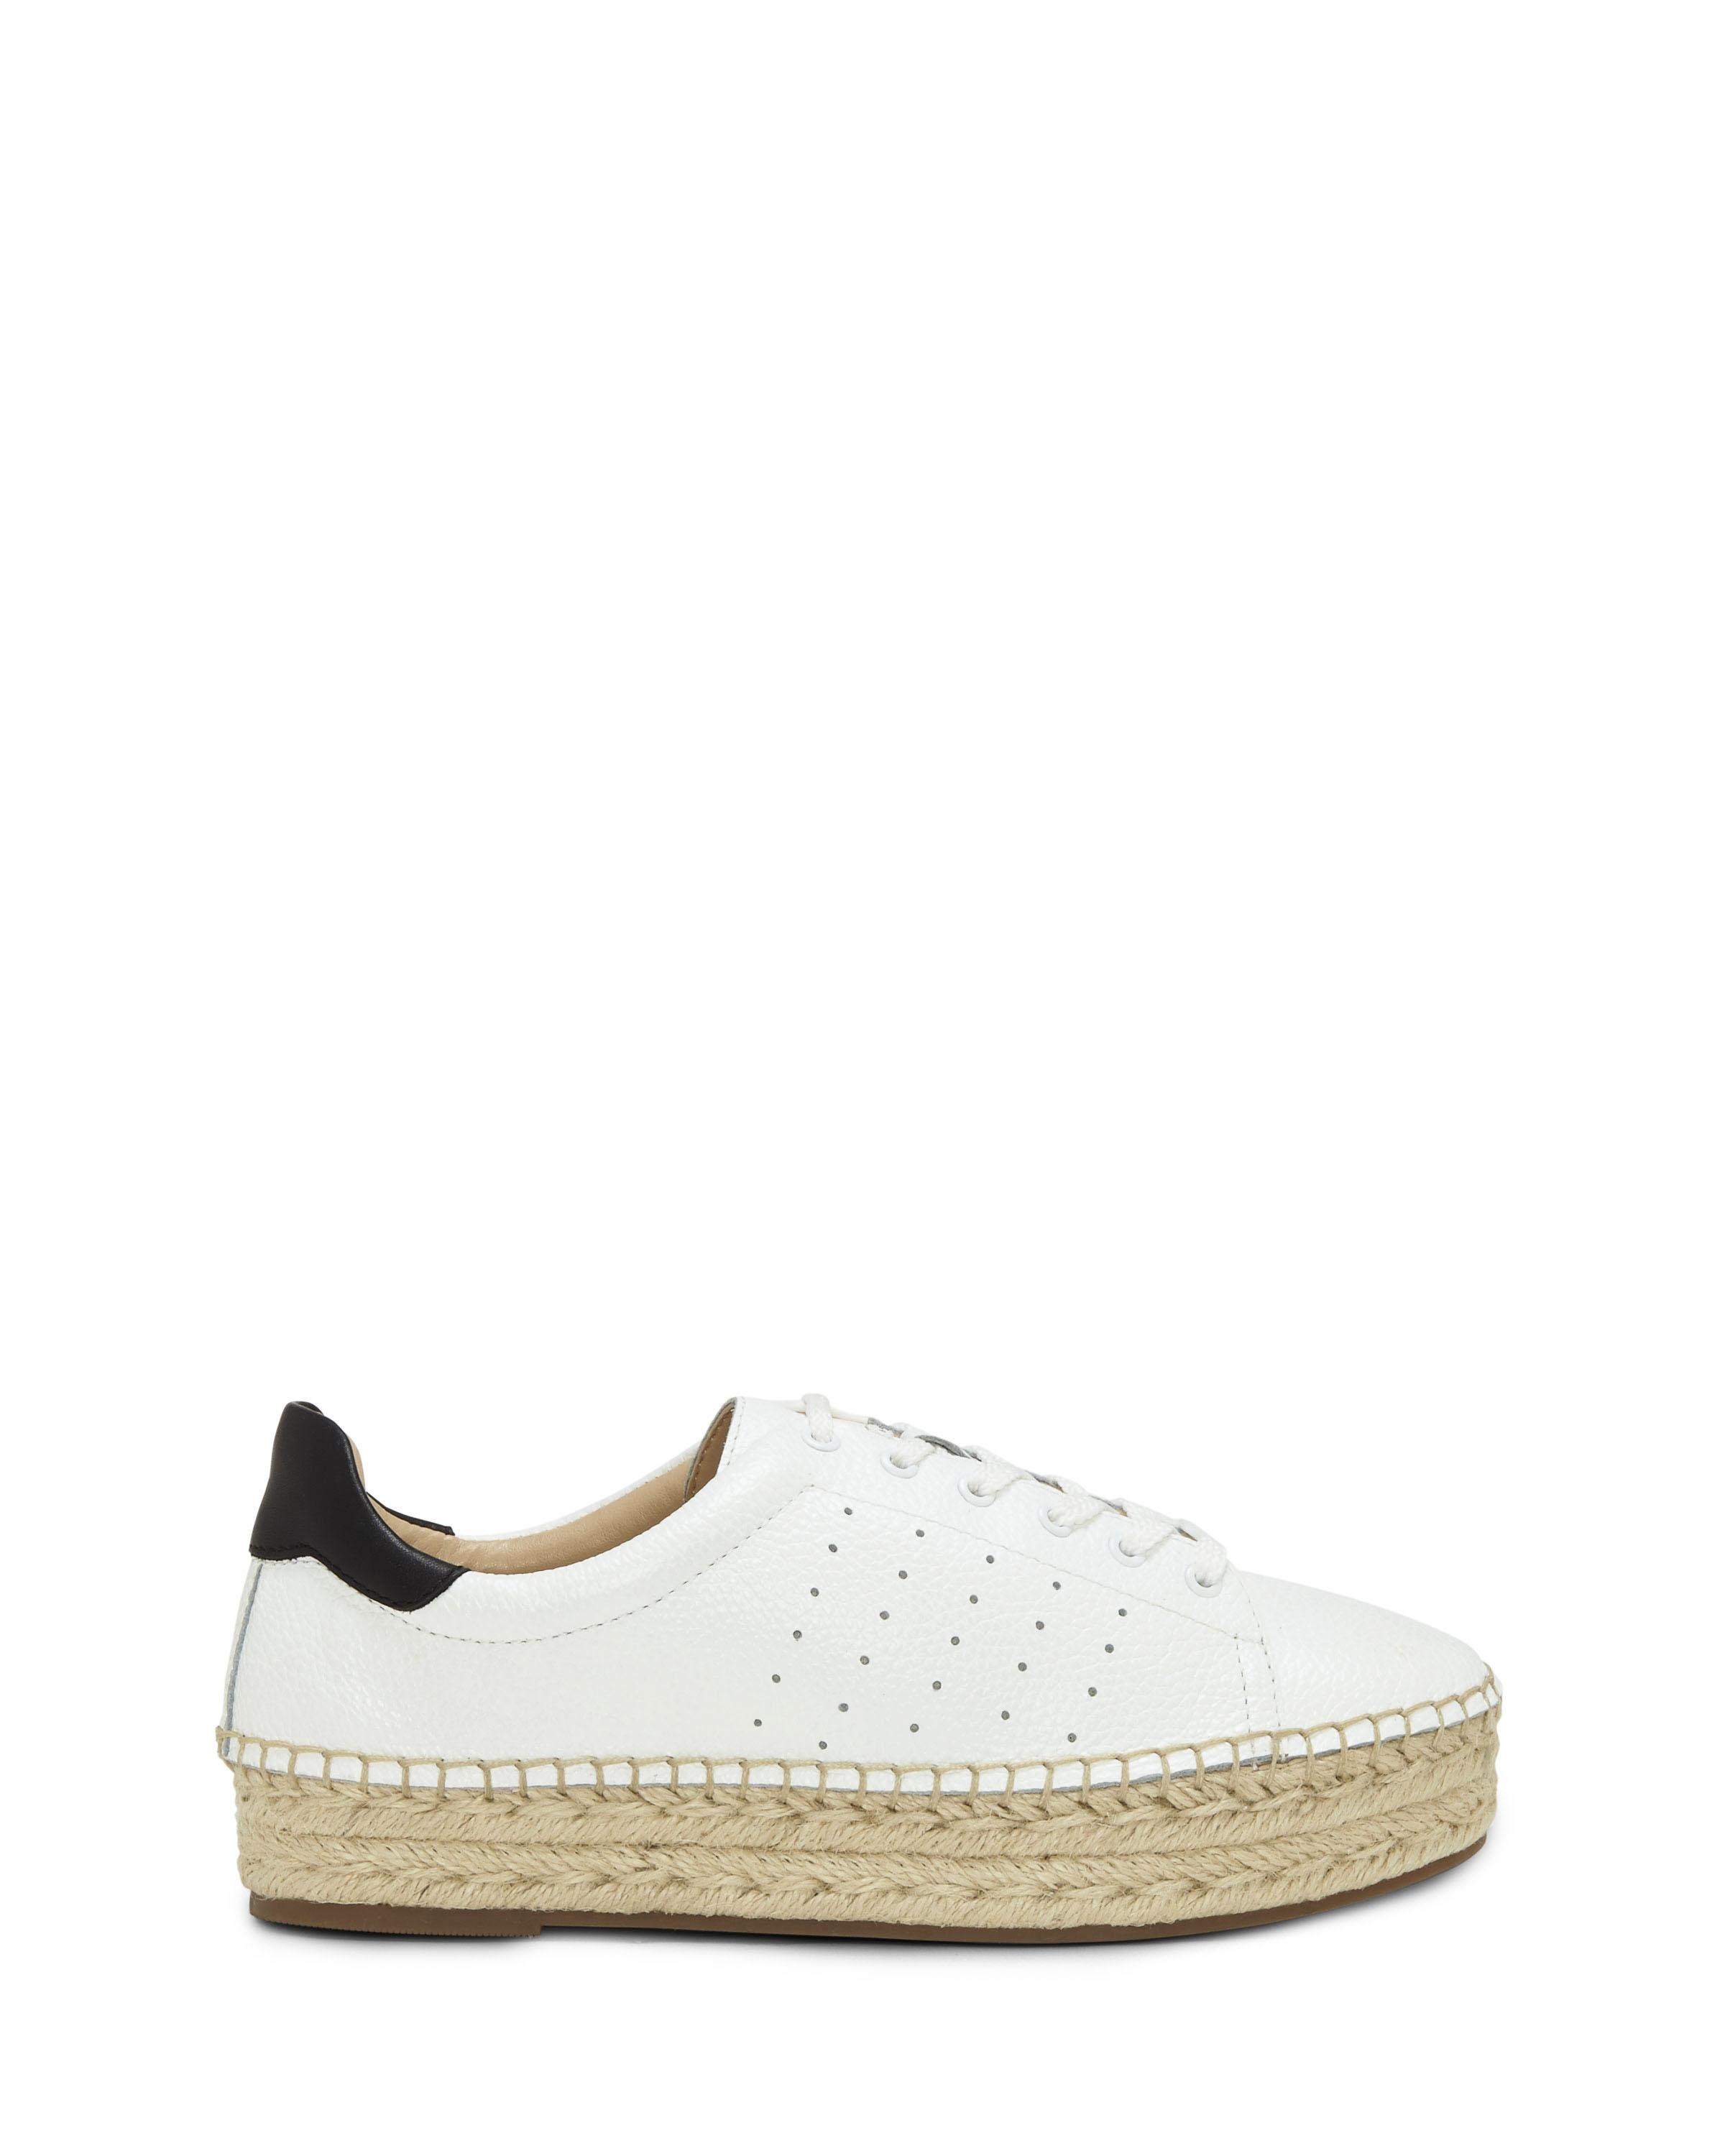 Vince Camuto Jinnie Perforated Platform Espadrille Sneakers Xbe31mHr8